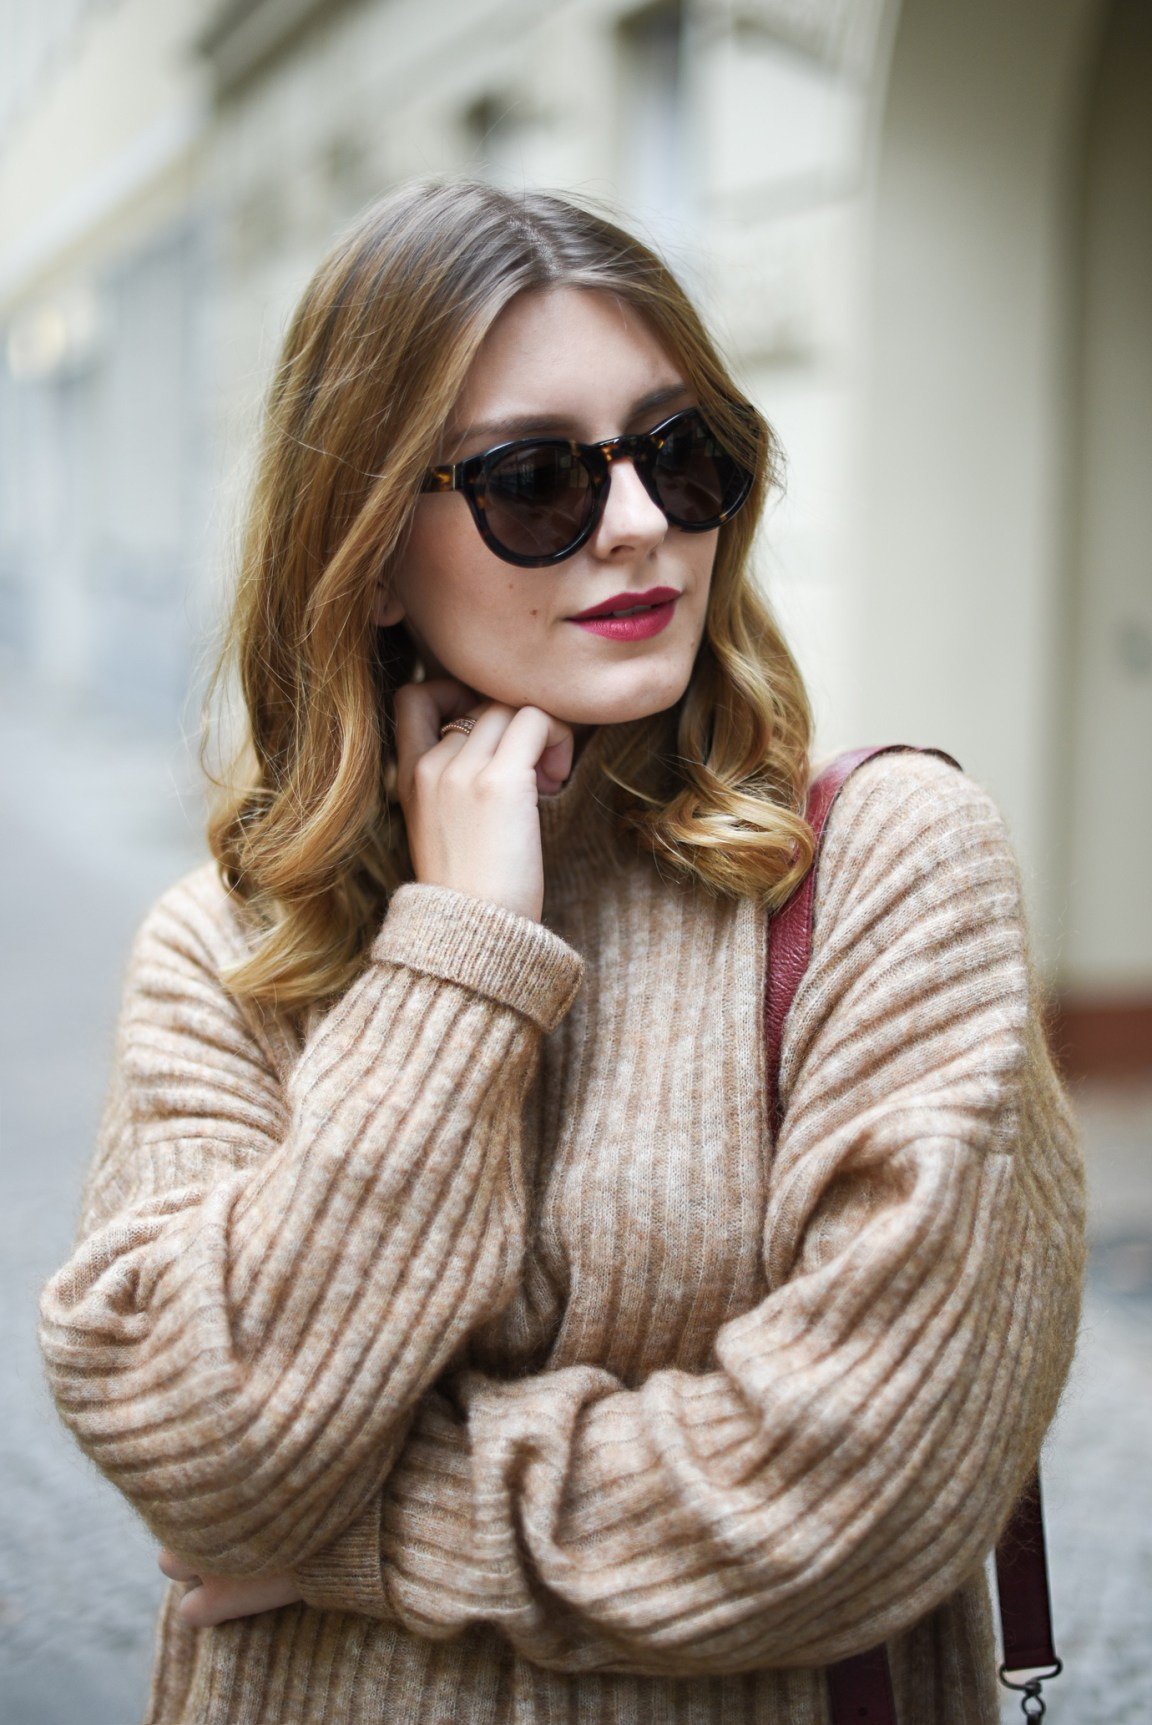 Camel_Herbst_Outfit_6